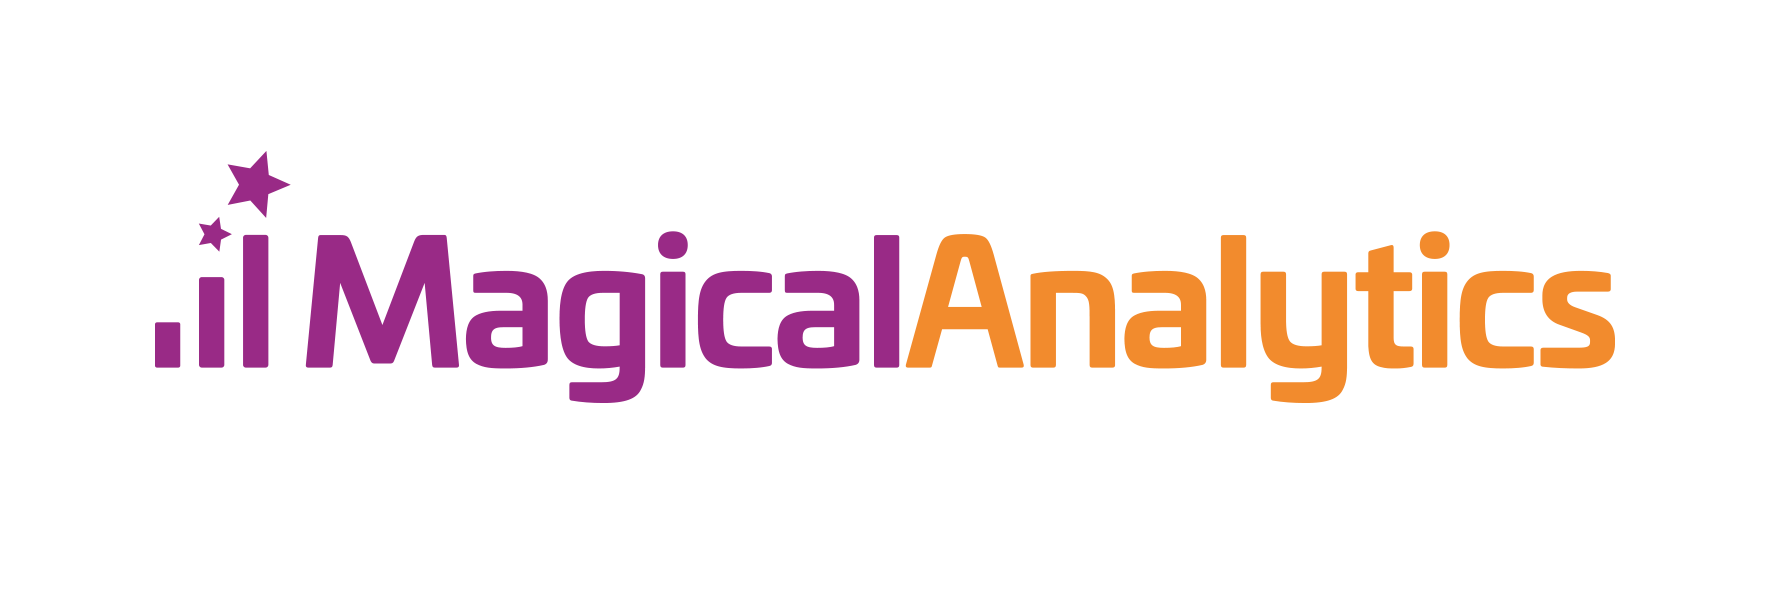 Analítica Web - Analistas Web - Magical Analytics